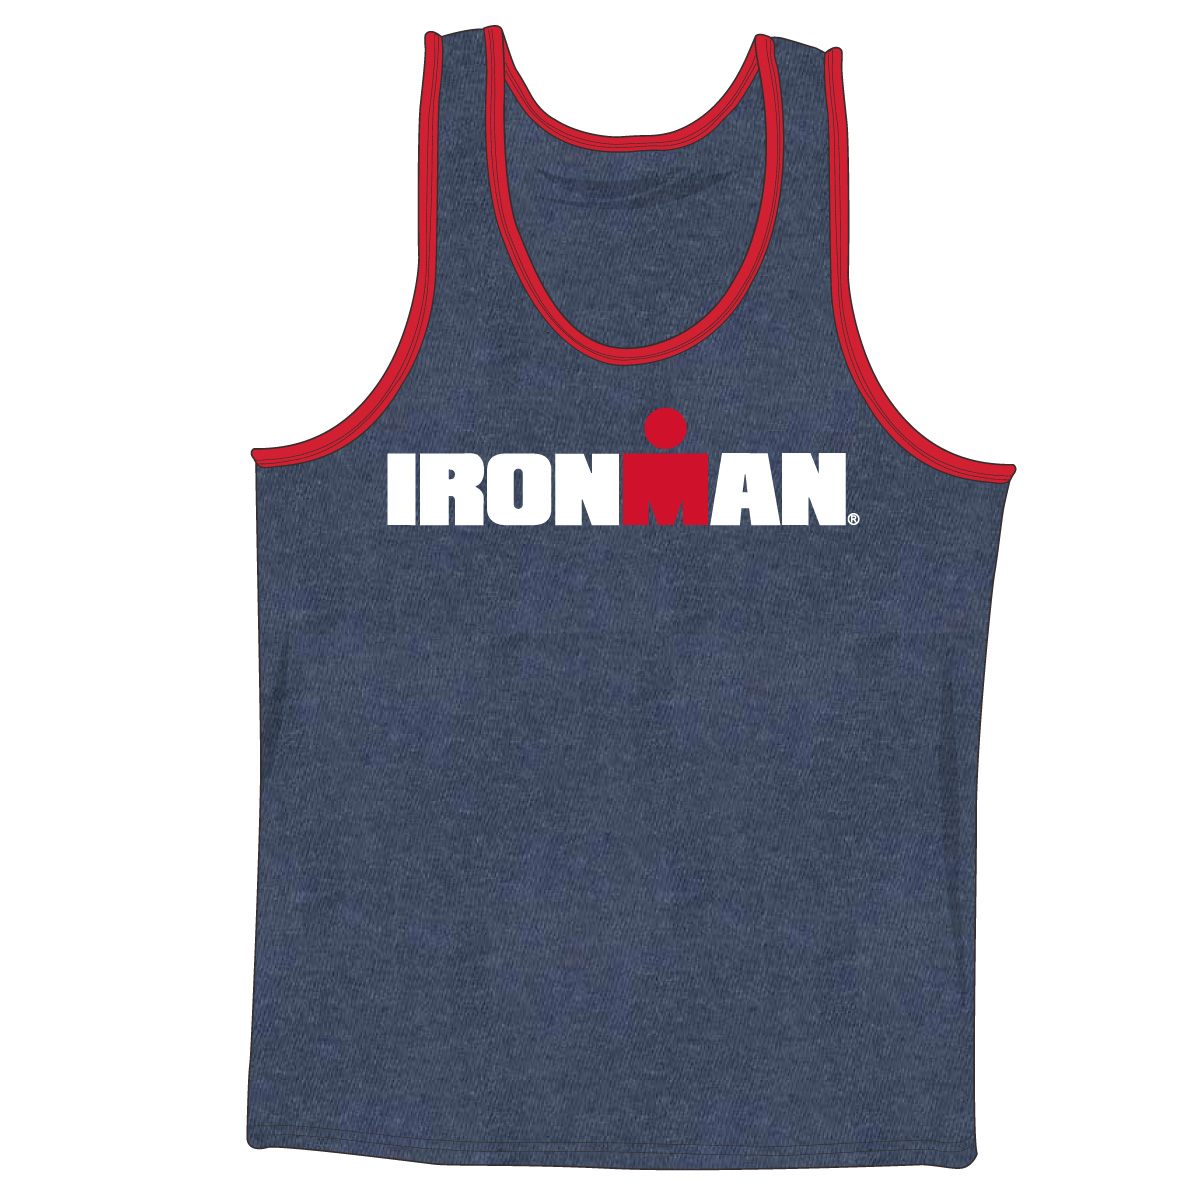 IRONMAN MEN'S TANK